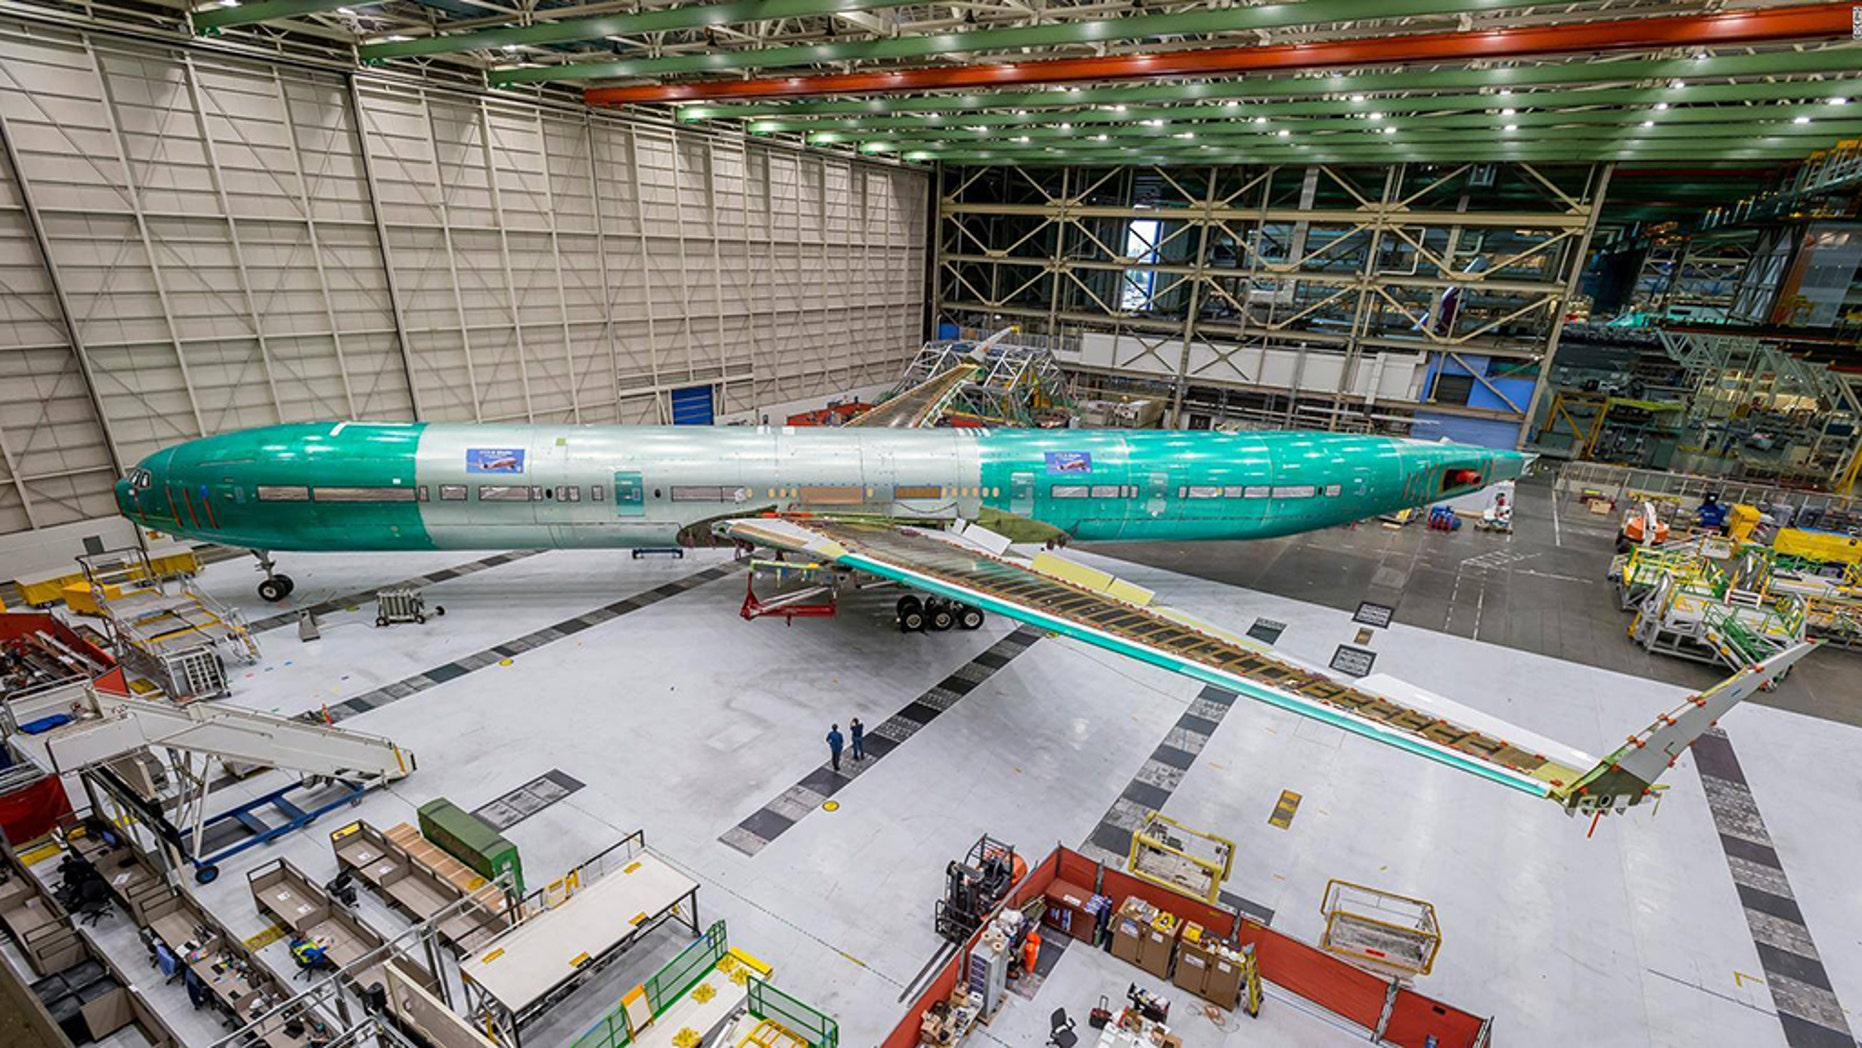 A test model of Boeing's new 777X Jetliner will undergo testing before models become available to carriers.